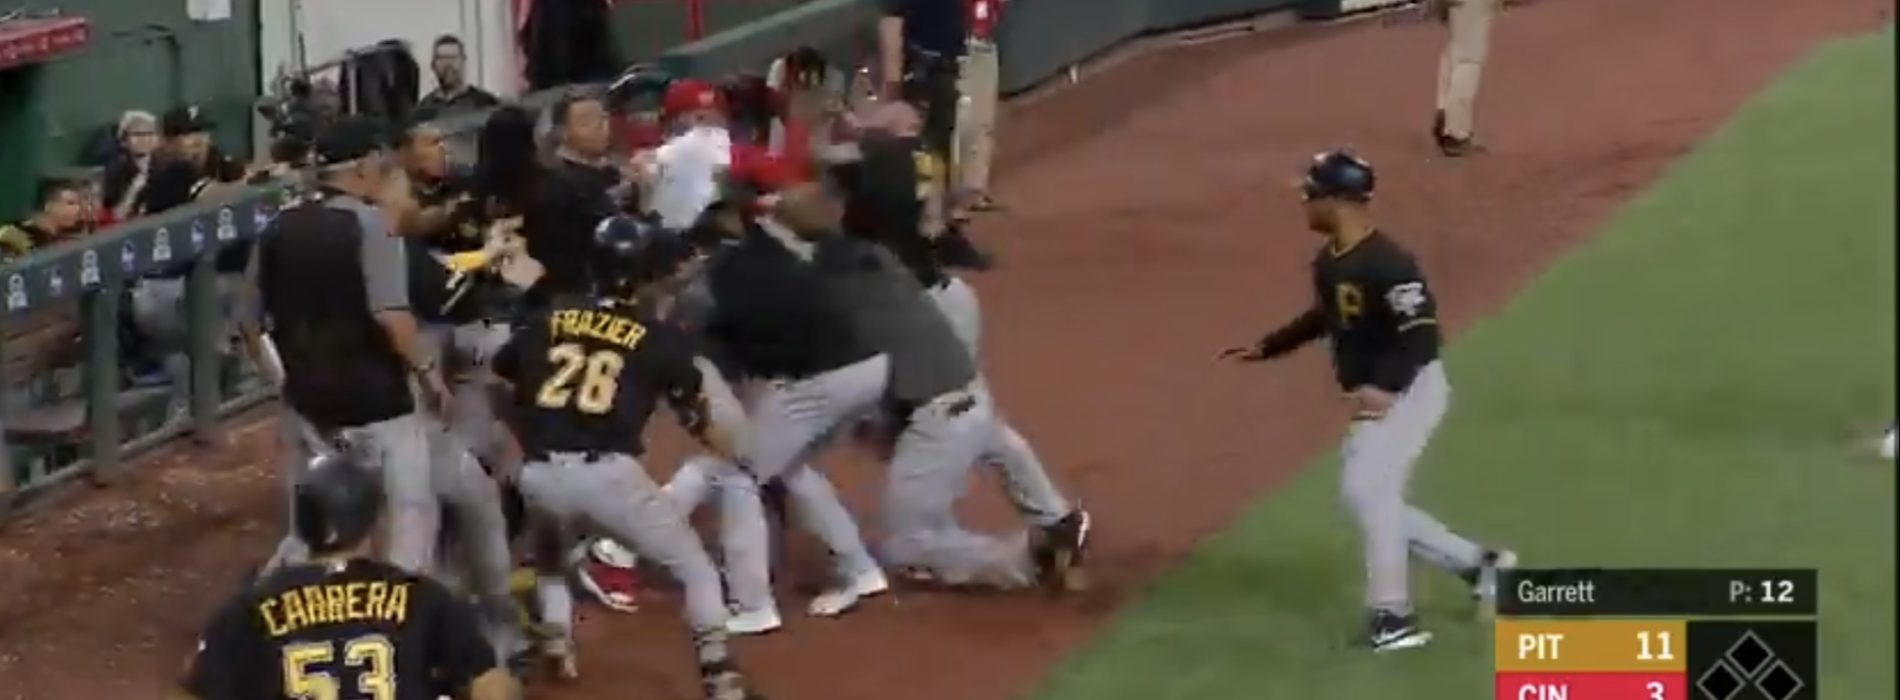 Watch: Bench-clearing brawl erupts between Reds and Pirates